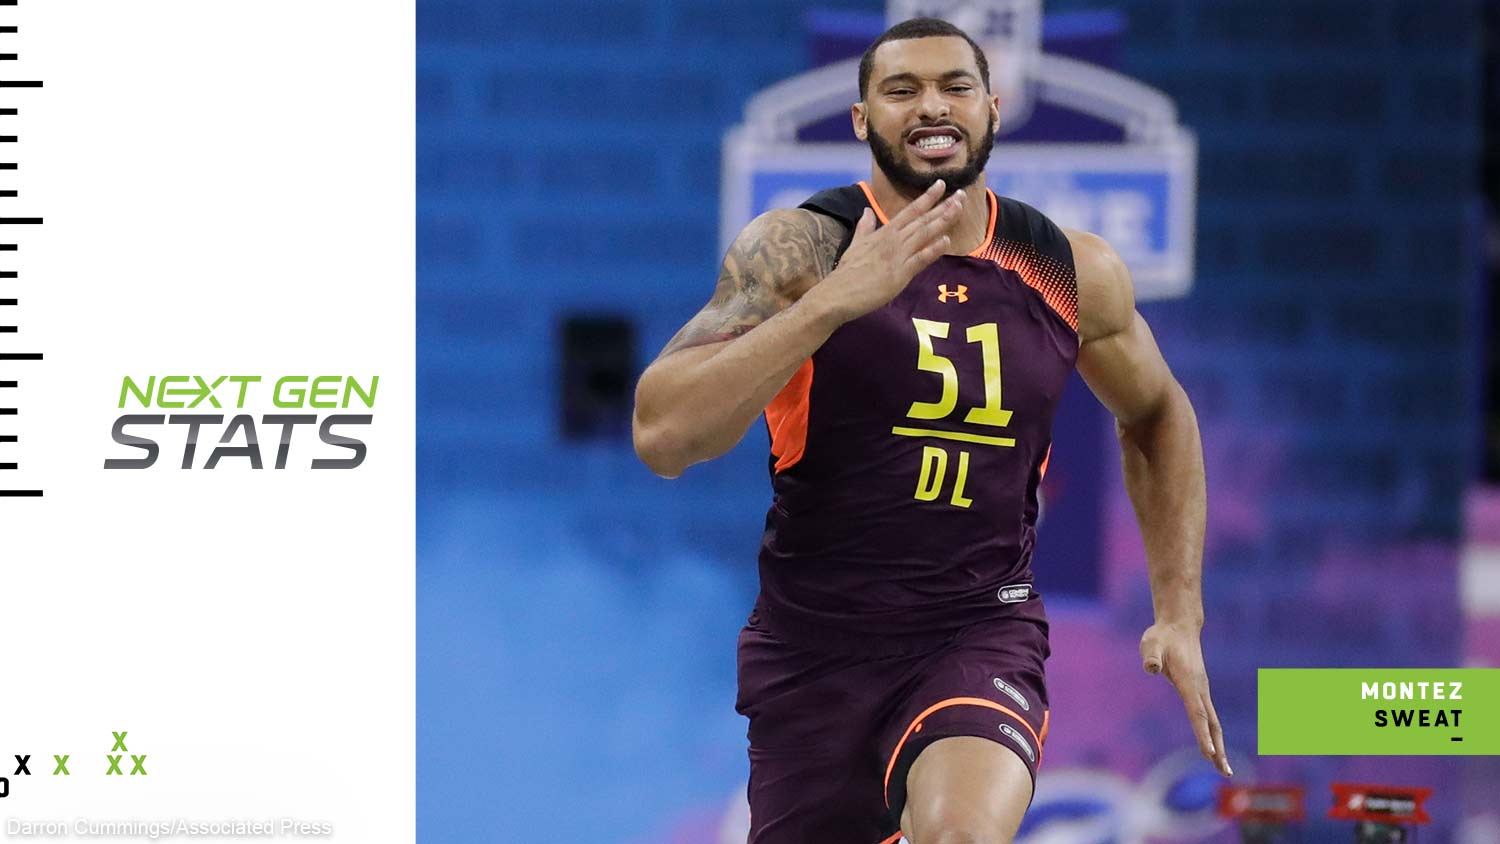 Nfl Scouting Combine Nfl Com Mobile